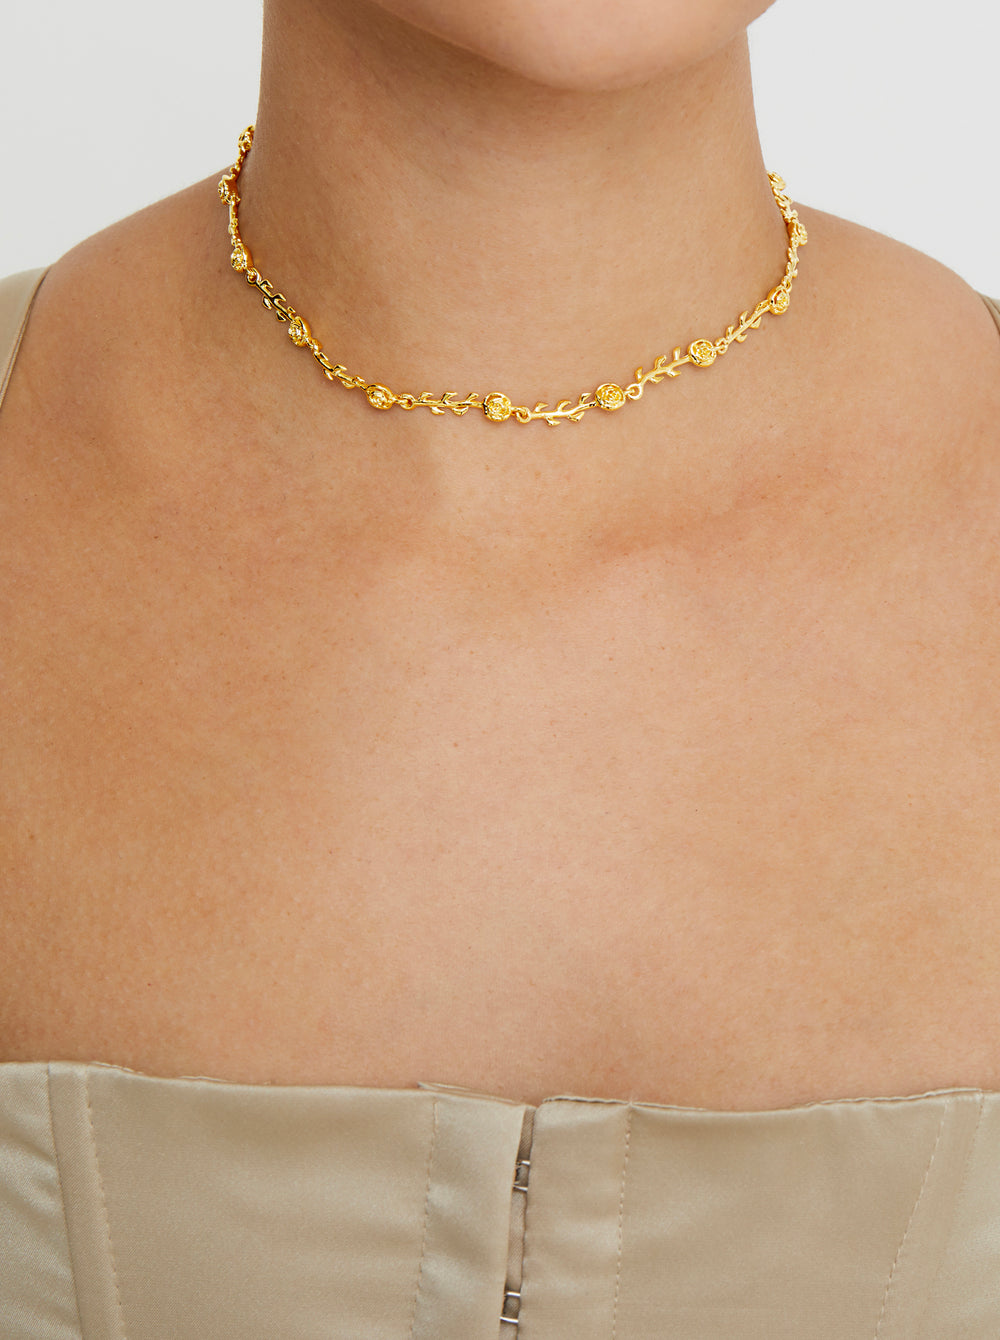 THE ROSE CHOKER (DANIELLE GUIZIO X THE M JEWELERS)